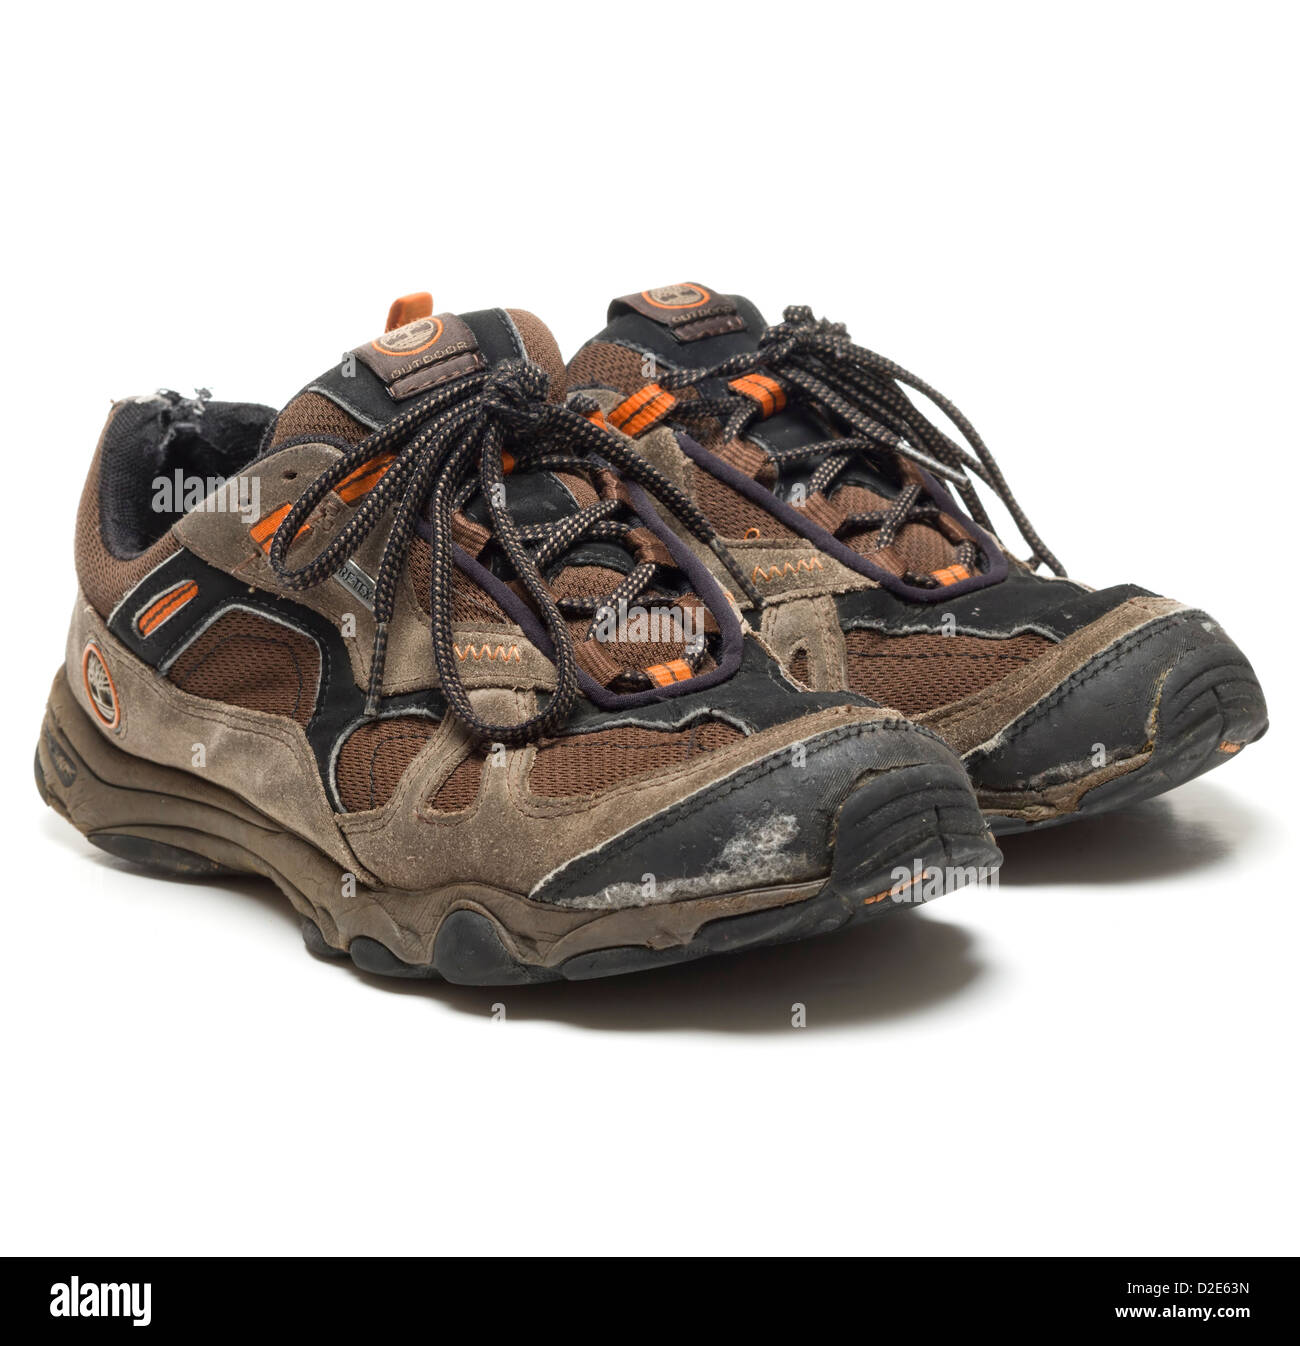 One pair of worn out brown Timberland hiking shoes - Stock Image